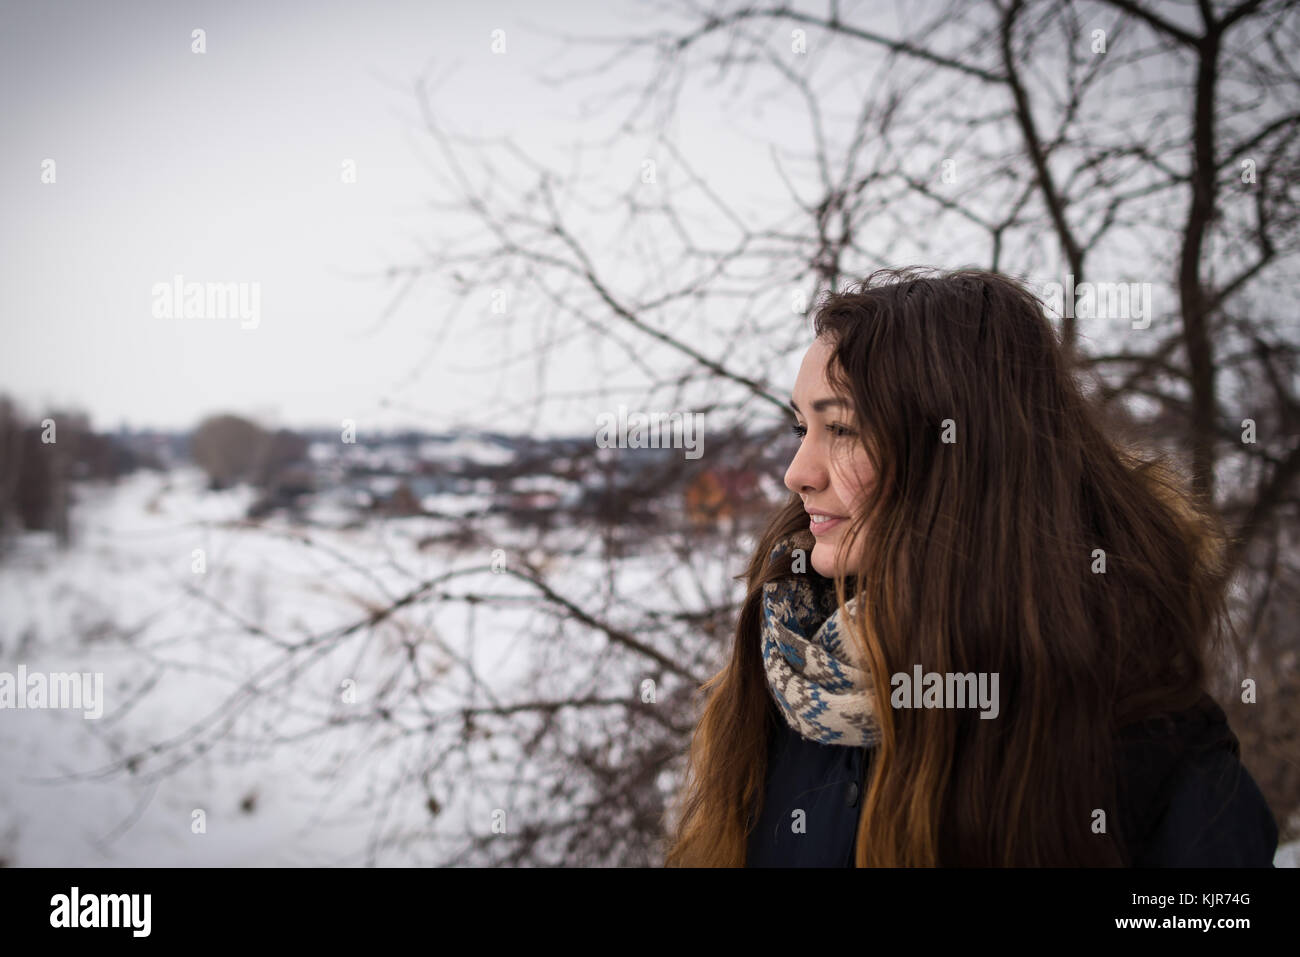 Pensive and romantic girl with beautiful long hair on the winter background looking away on the winter landscape - Stock Image